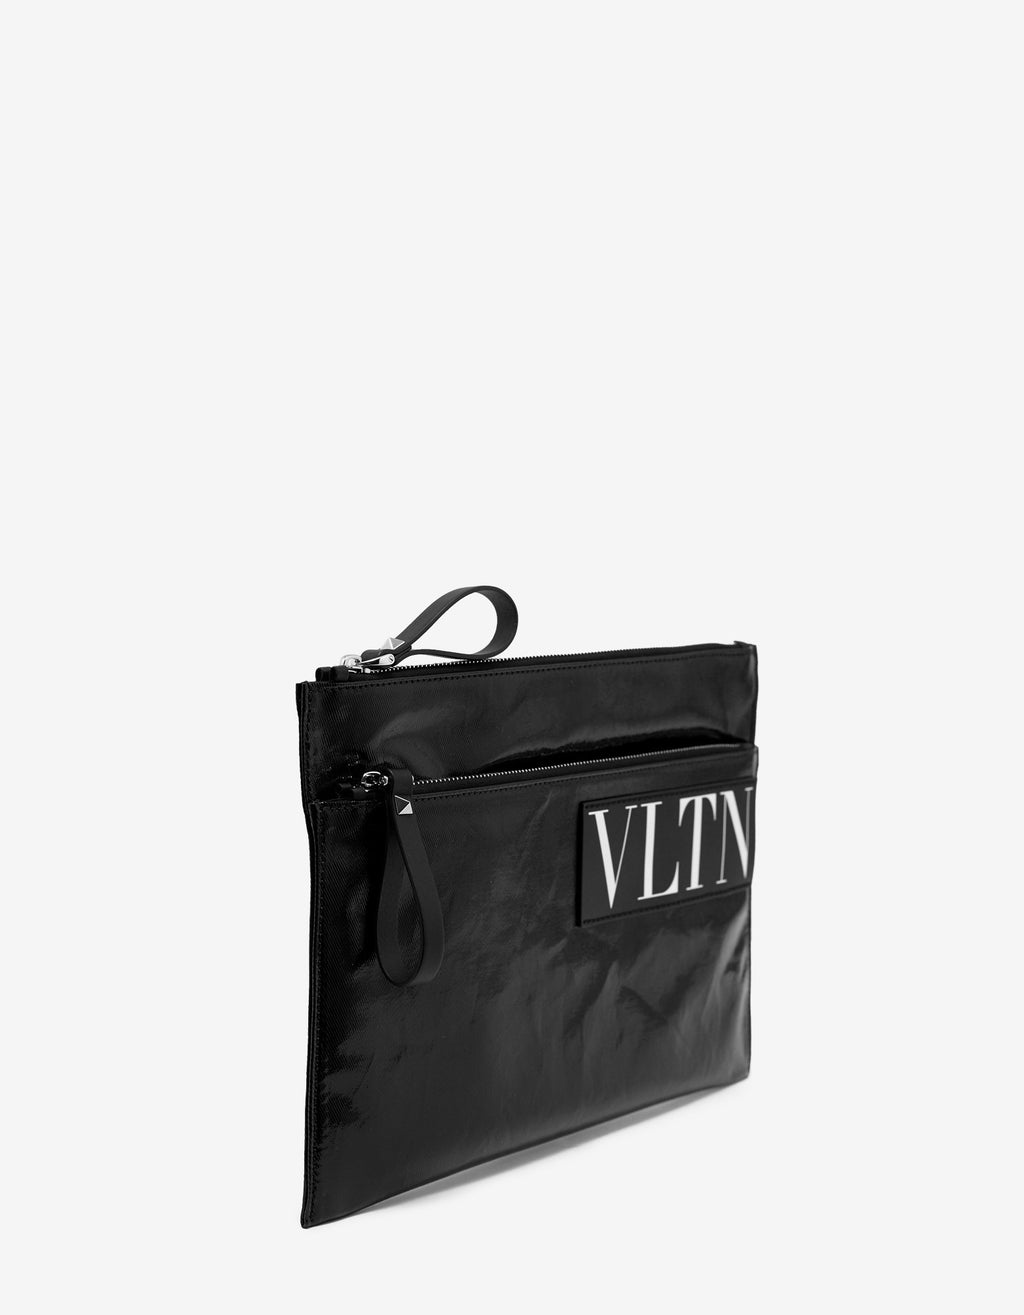 Black VLTN Gloss Canvas Clutch